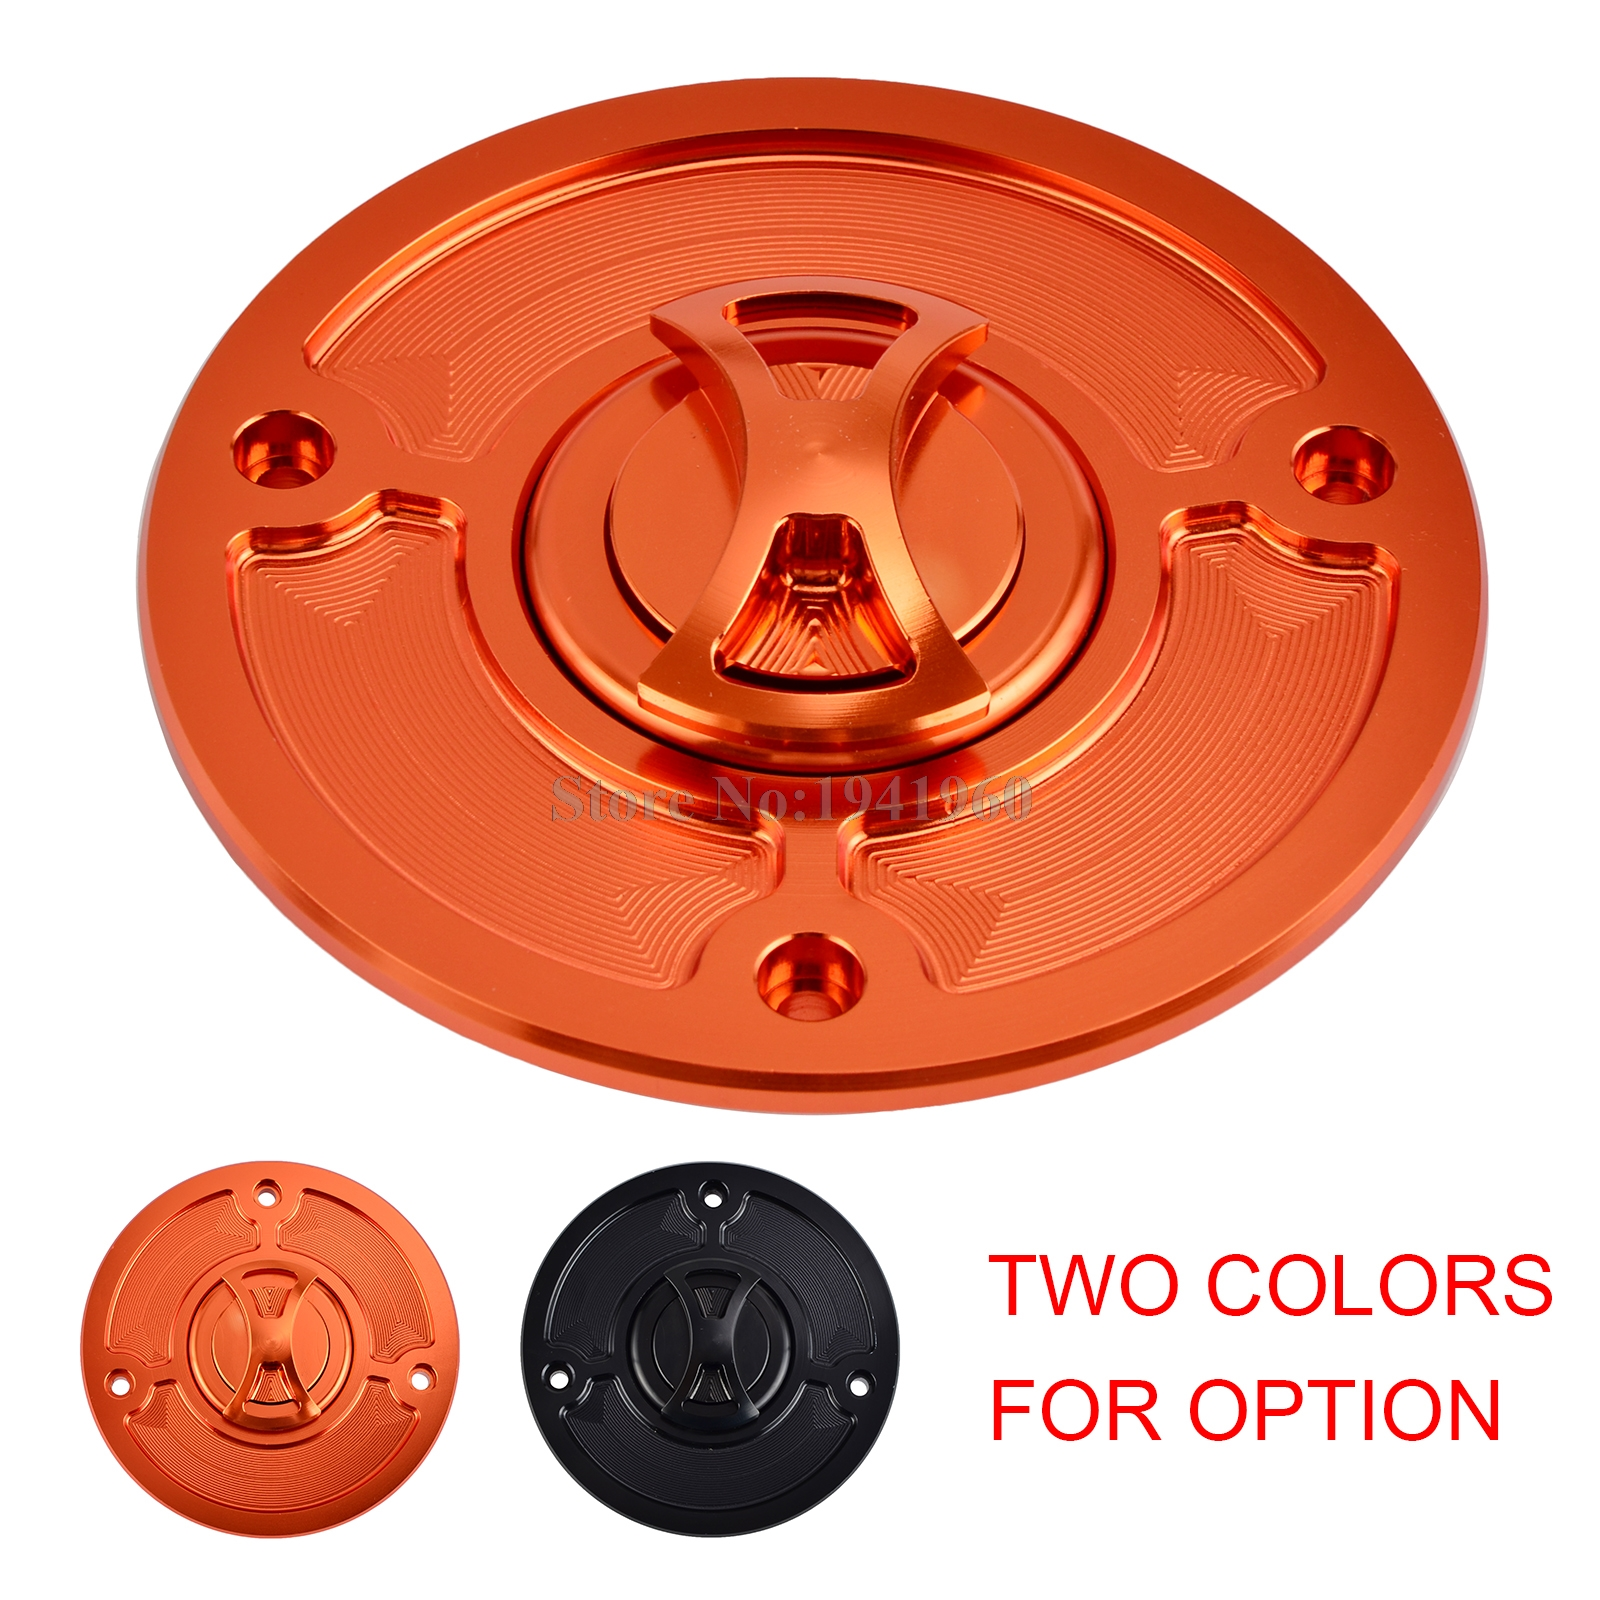 Motorcycle Aluminum CNC Gas Fuel Tank Cap Cover For KTM 125 200 390 Duke Black Orange for ktm 390 duke motorcycle leather pillon rear passenger seat orange color